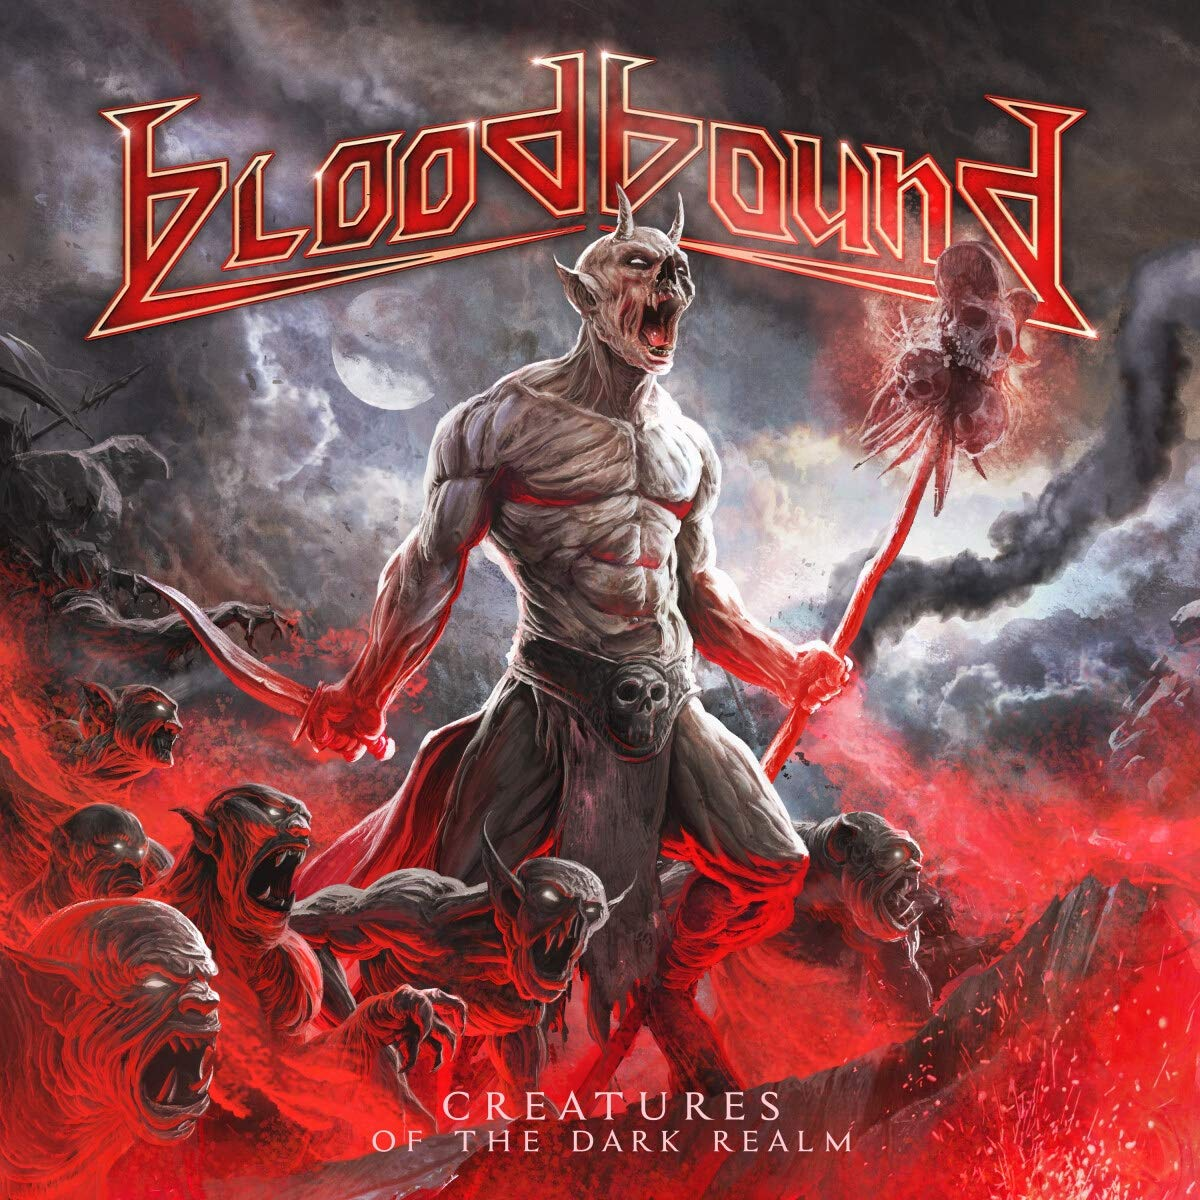 Bloodbound - Creatures of the Dark Realm (2021) [FLAC] Download